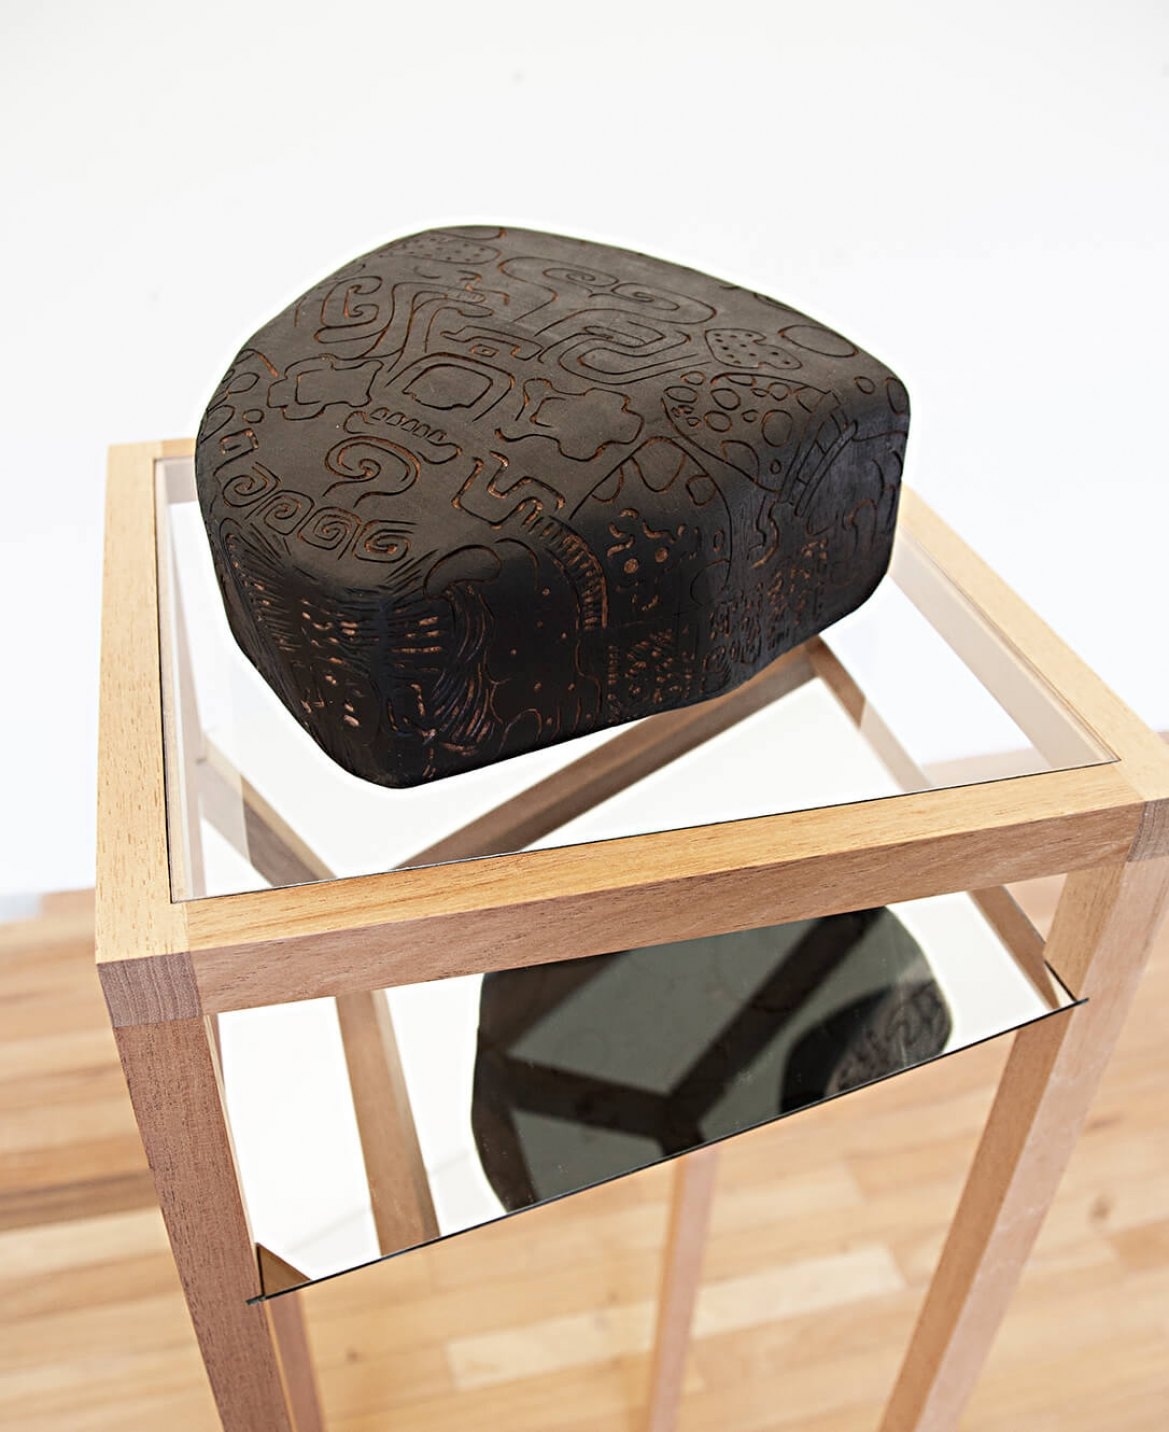 Mariana Castillo Deball,&nbsp;<em>Zoomorph G</em>,&nbsp;2013, wooden carved sculpture mounted on base with mirror, 155 × 40 × 40 cm - Mendes Wood DM